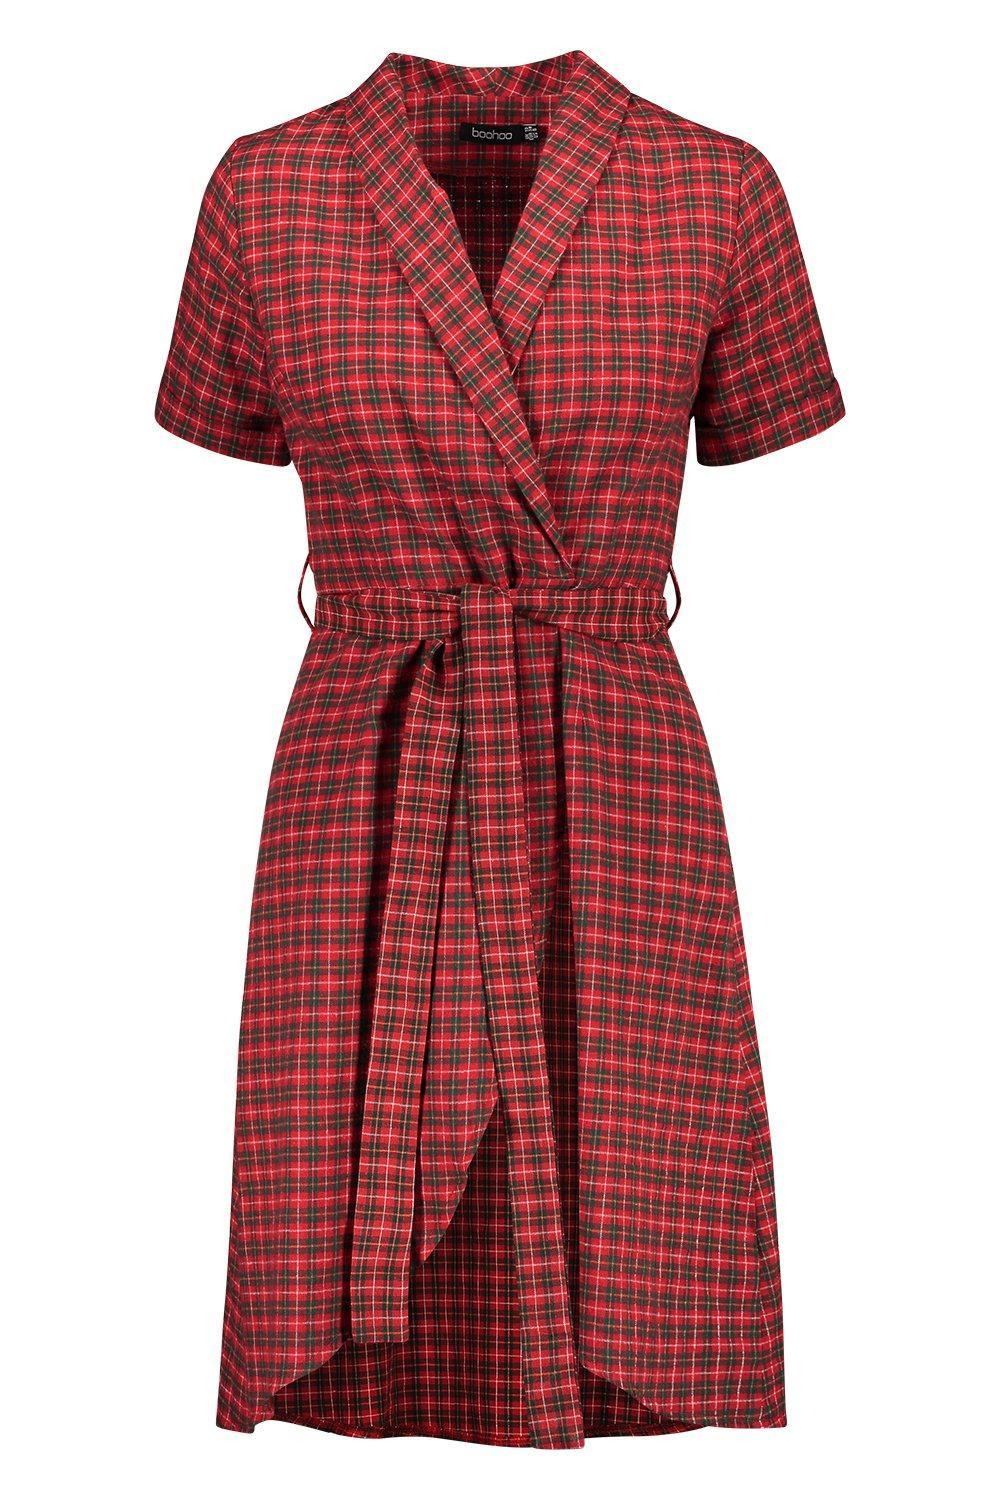 998018e6d94b Boohoo - Red Tartan Print Belted Wrap Midi Dress - Lyst. View fullscreen